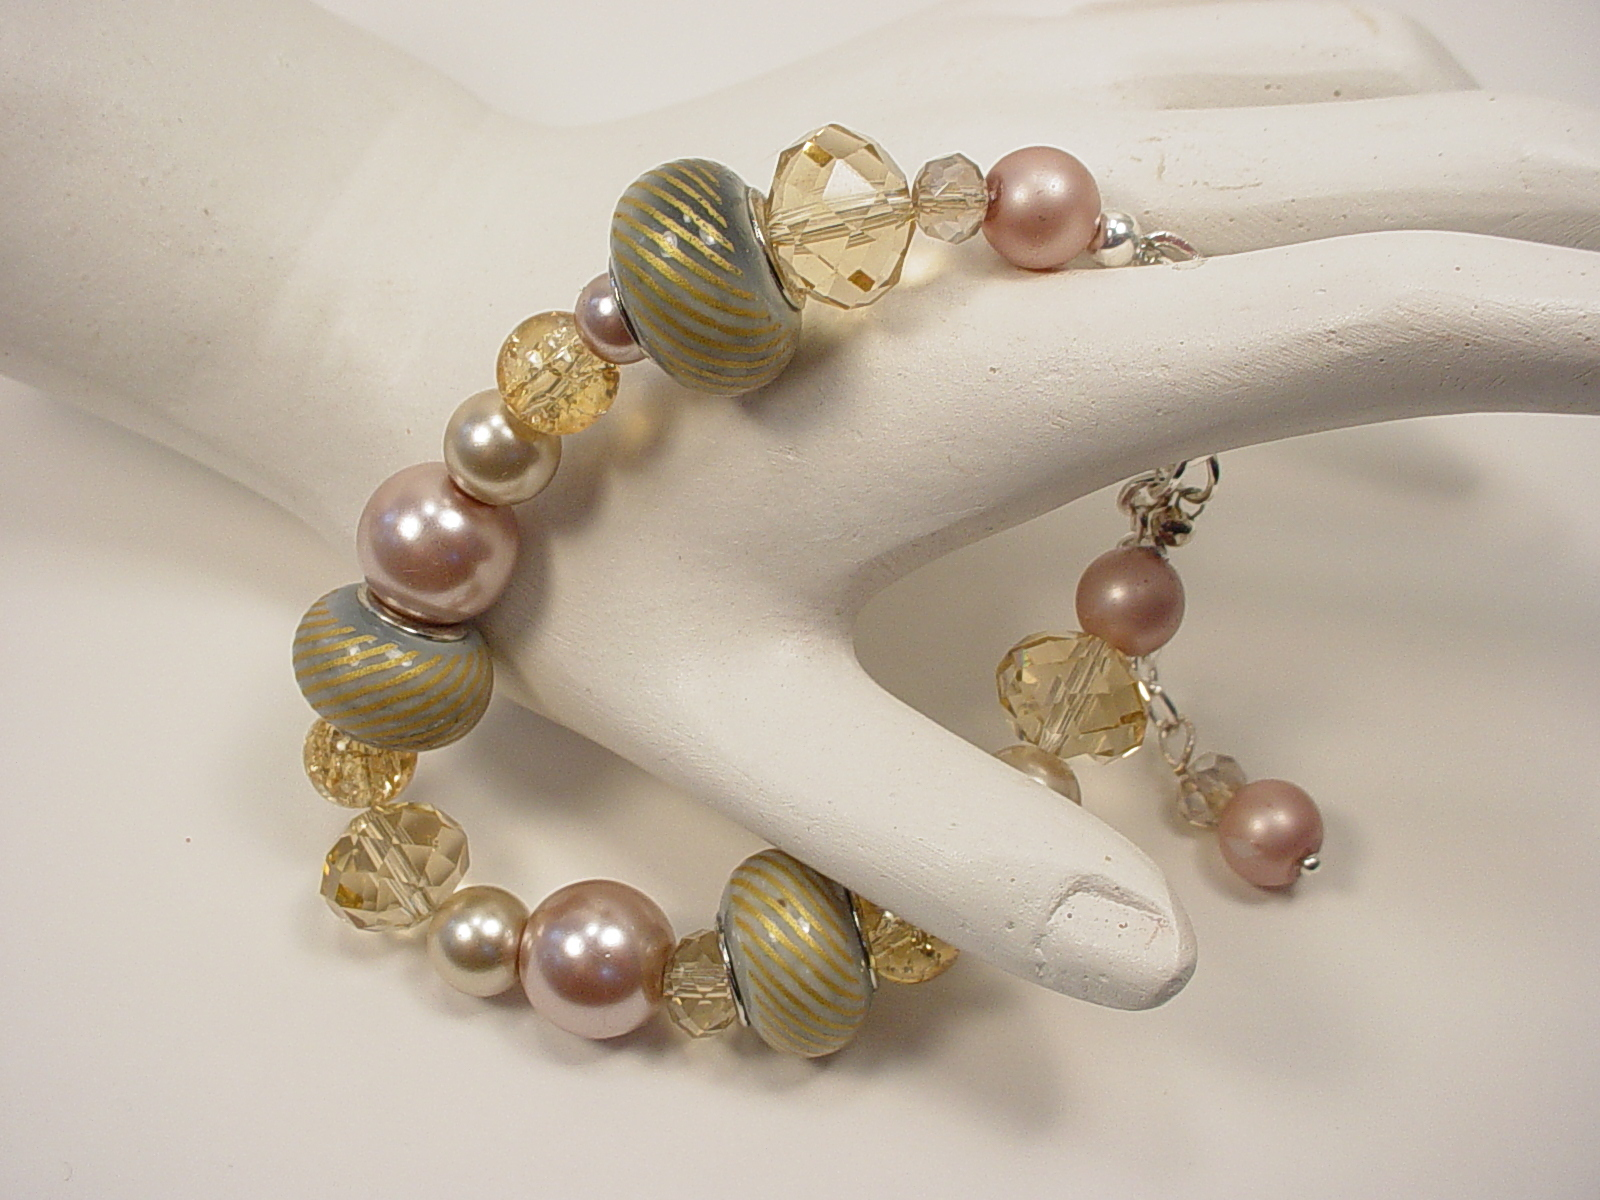 Bracelet with, Sparkly Crystal, Pearls, and Large Hole Beads in Pink, Mauve and